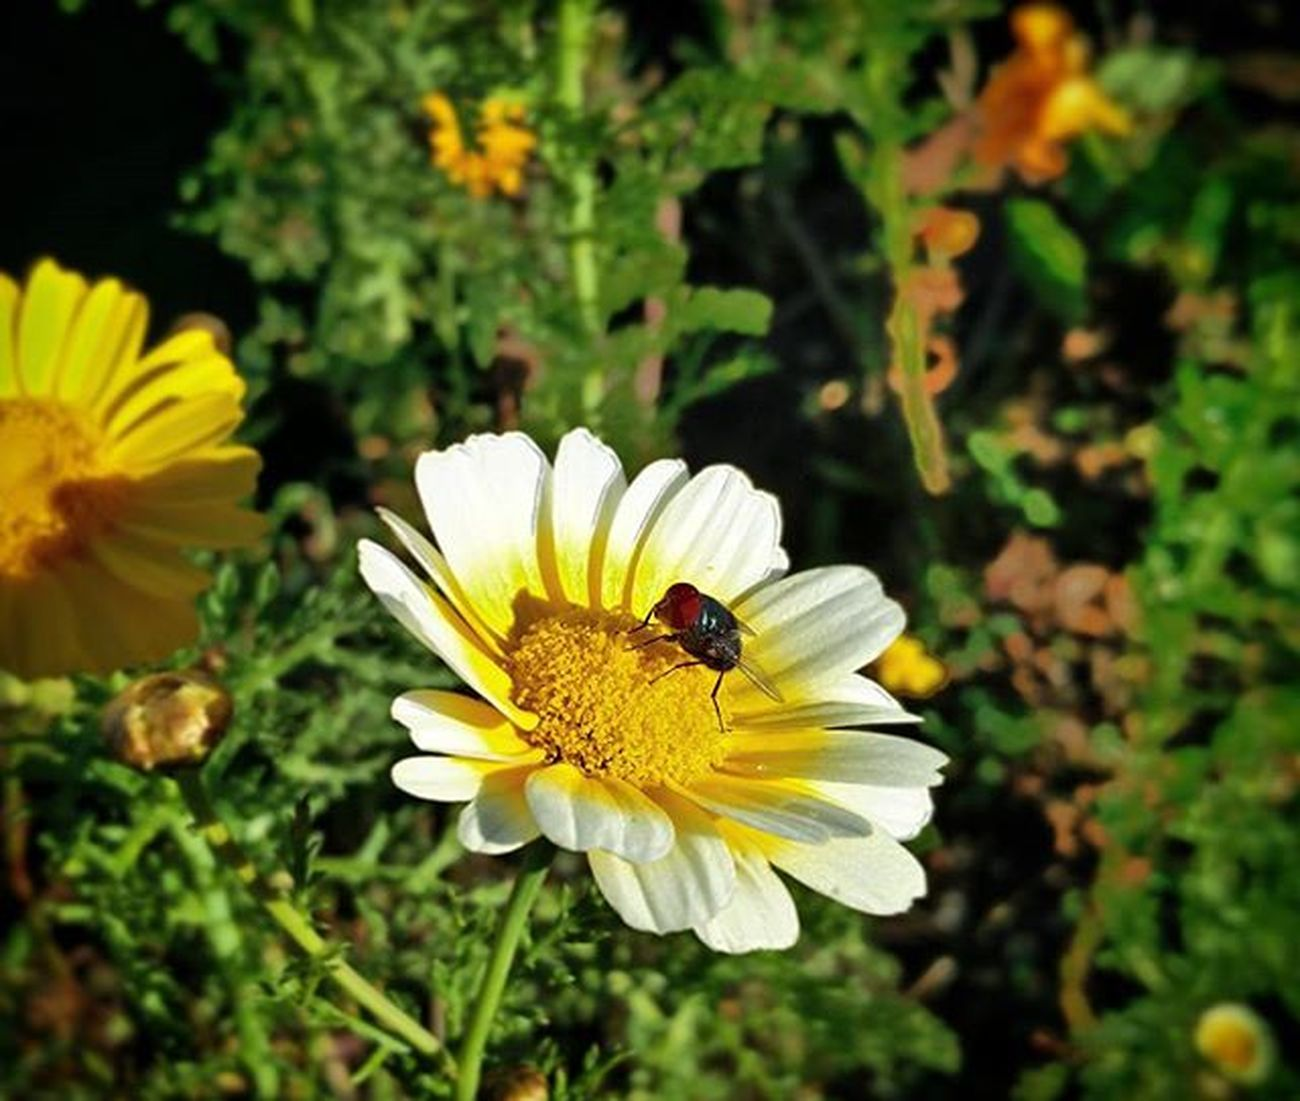 Showmeyourflowers Bee Nectar Flowers Valleys Kodai Green Fresh Colors Of Nature Cool Awesome Pleasant Sunset Sun Retro Nofilter Oneplus2 Onepluslife